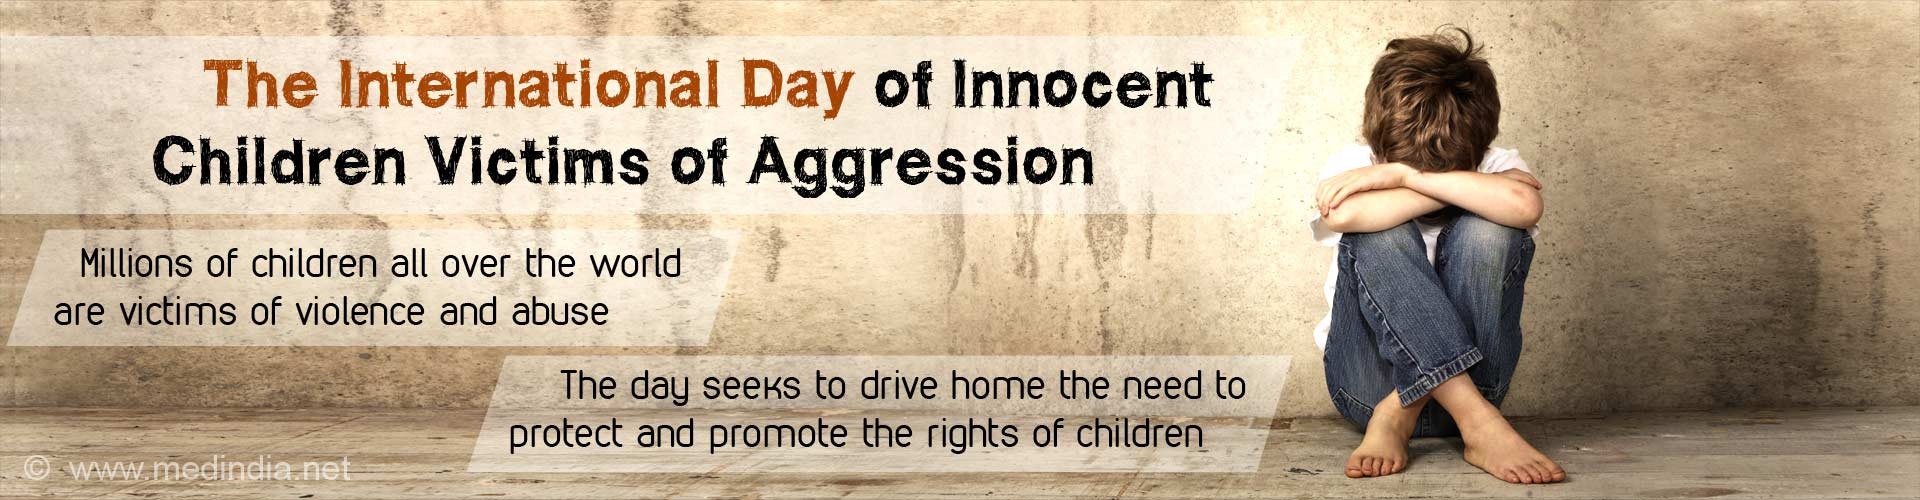 the international day of innocent children victims of aggression